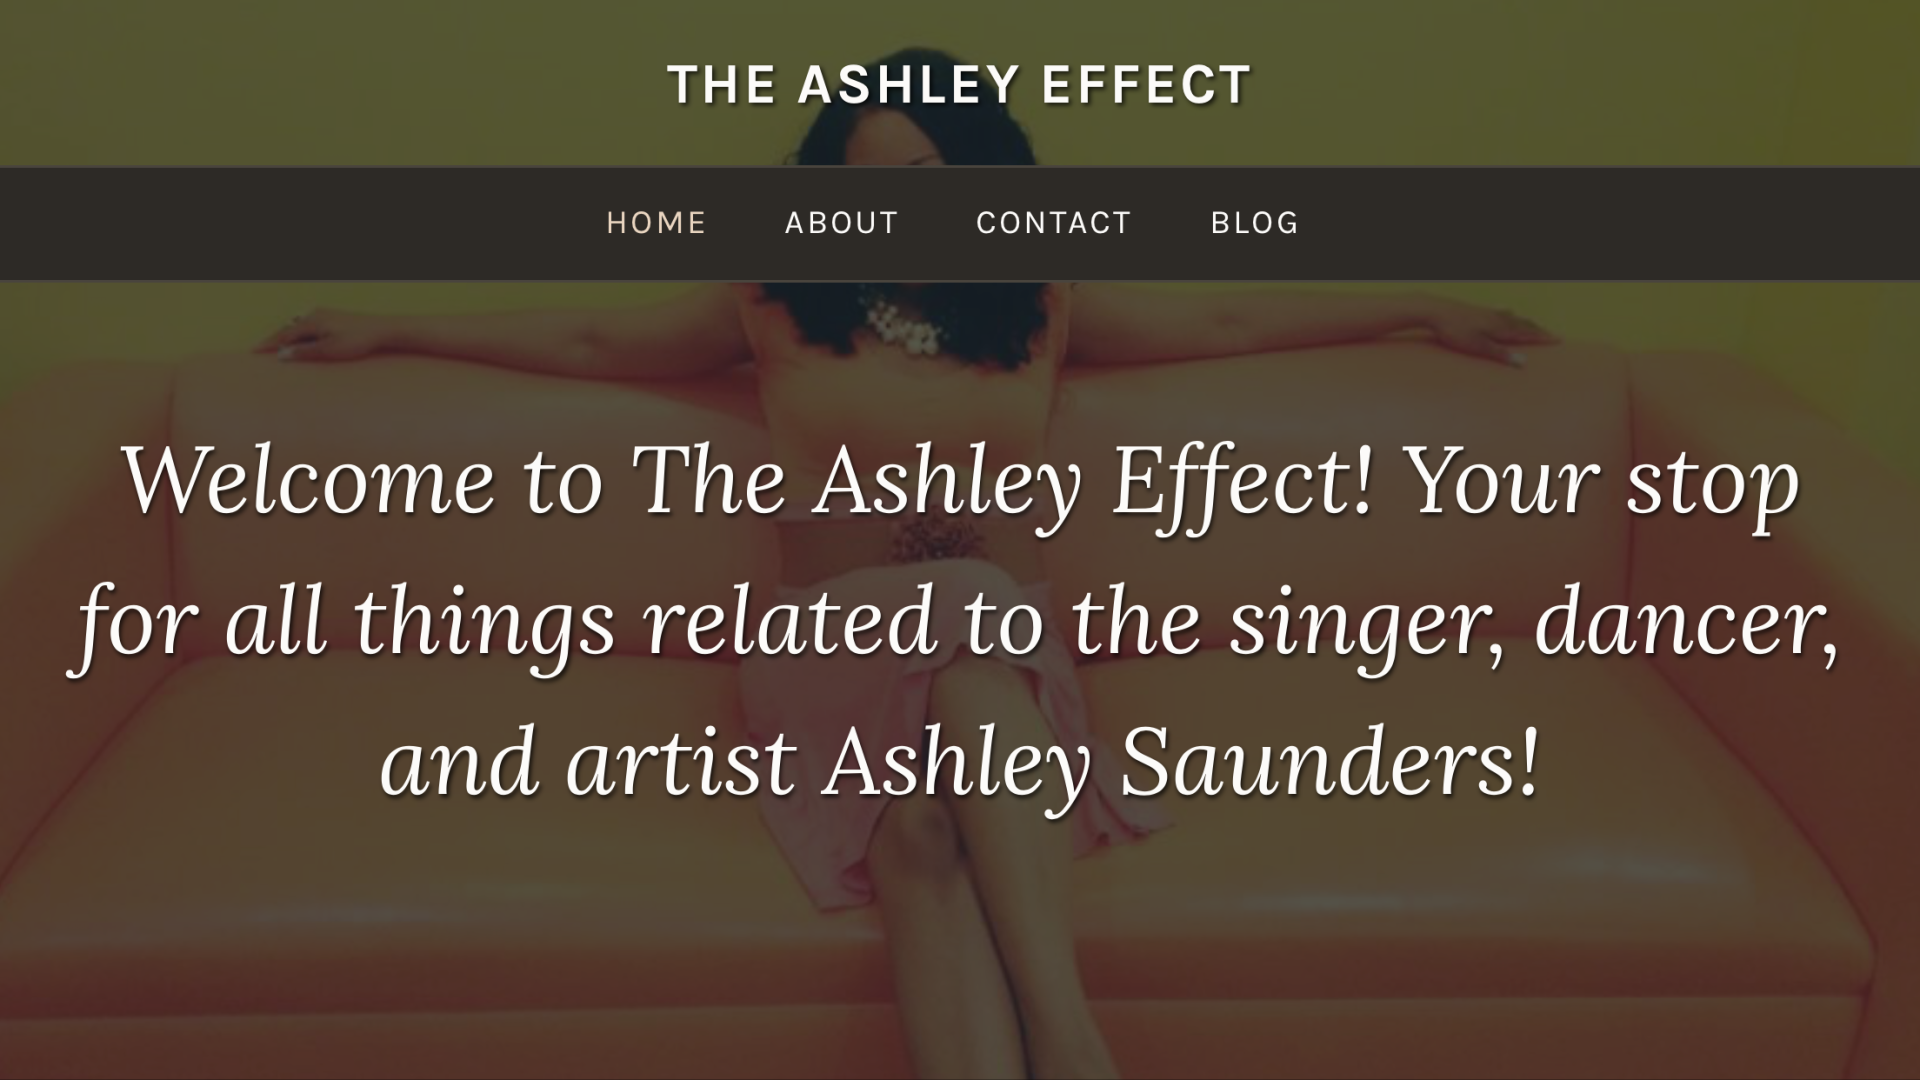 THE ASHLEY EFFECT